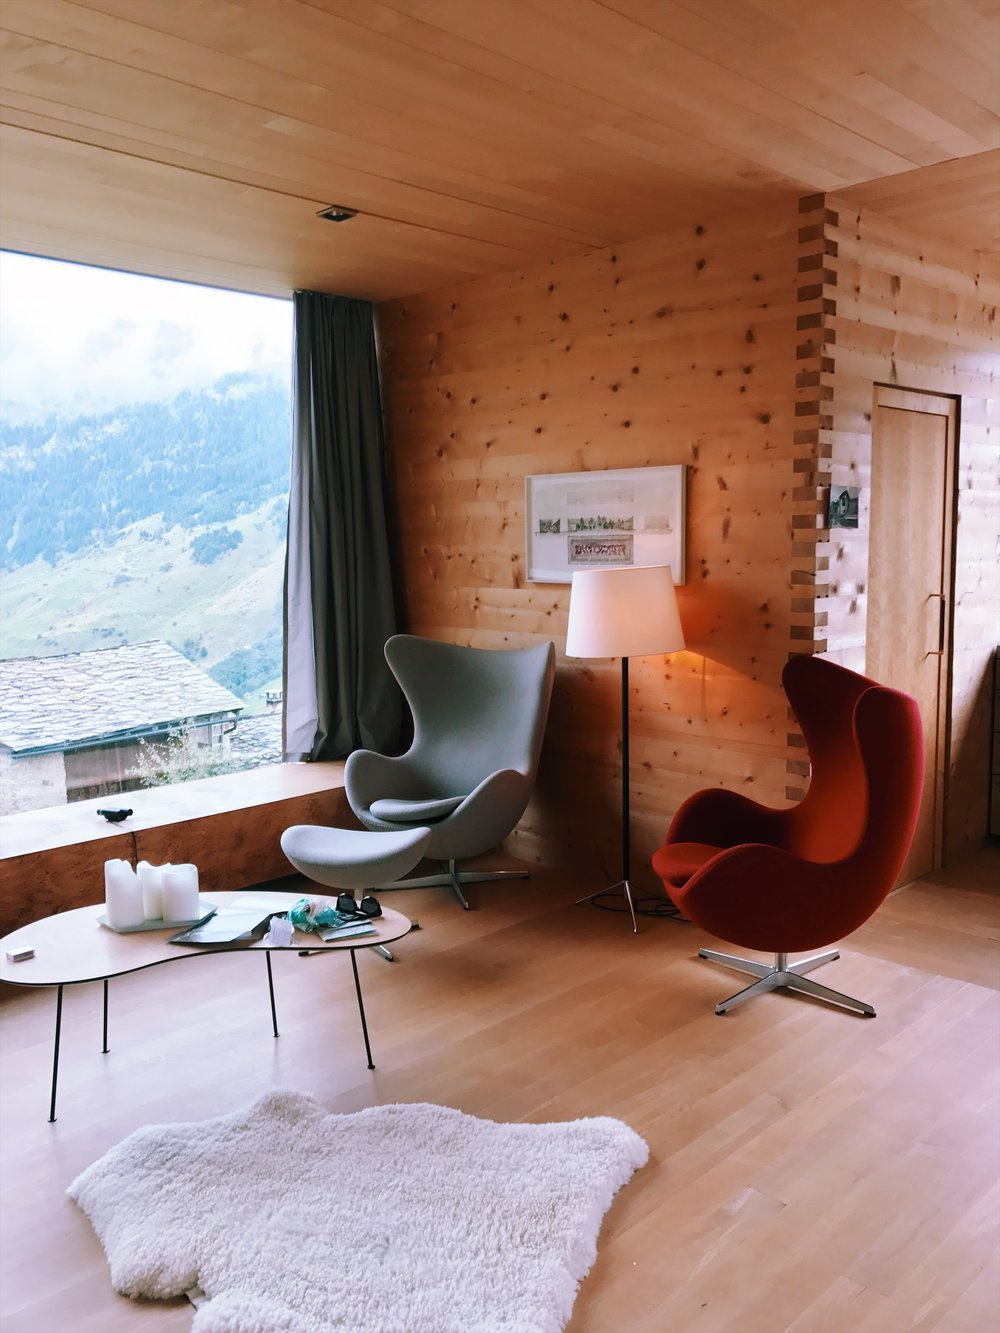 Peter Zumthor's vacation homes, aka where we stayed for 3 days.